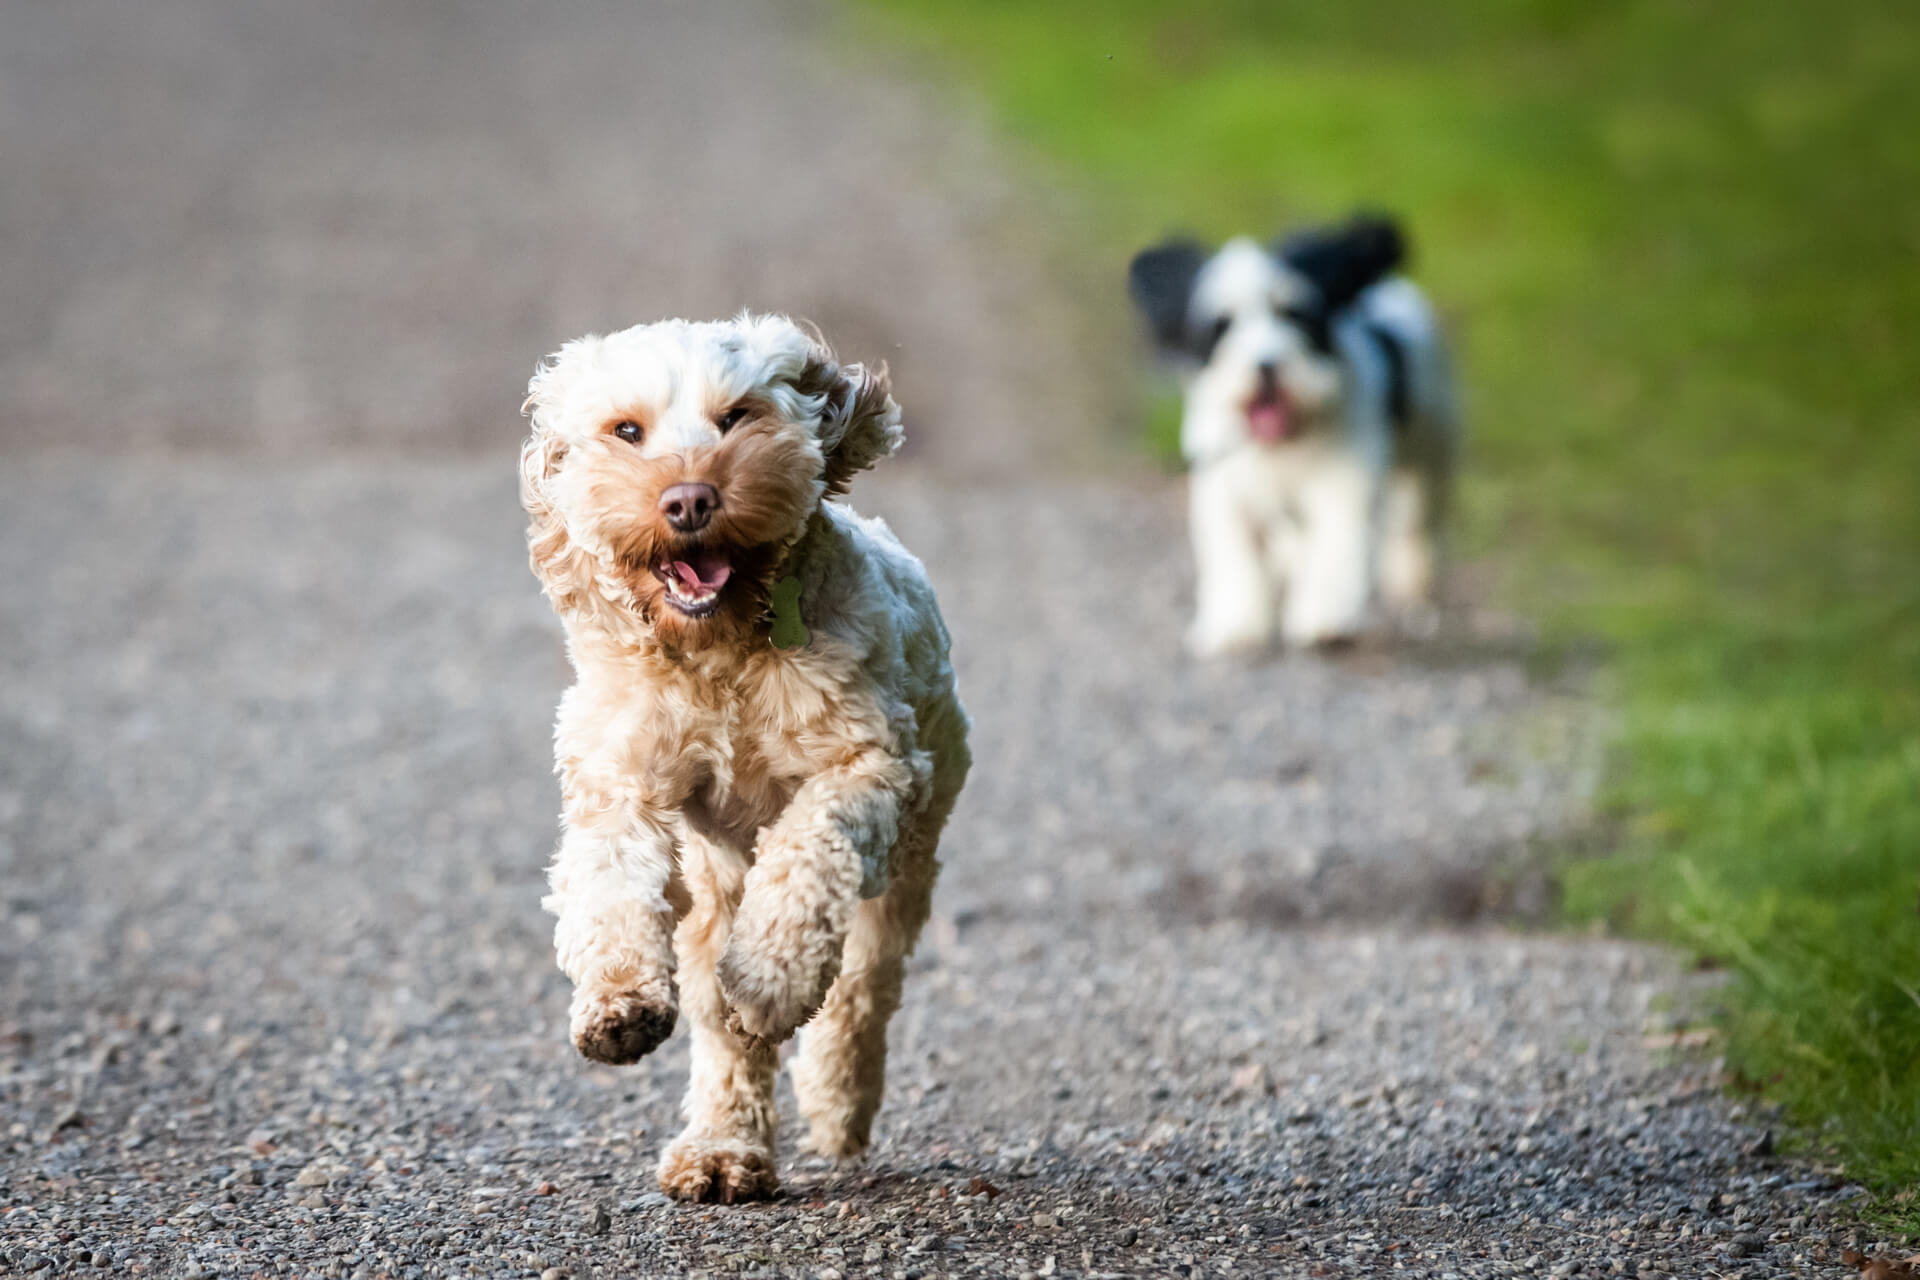 puppy running to the camera with another dog in the background